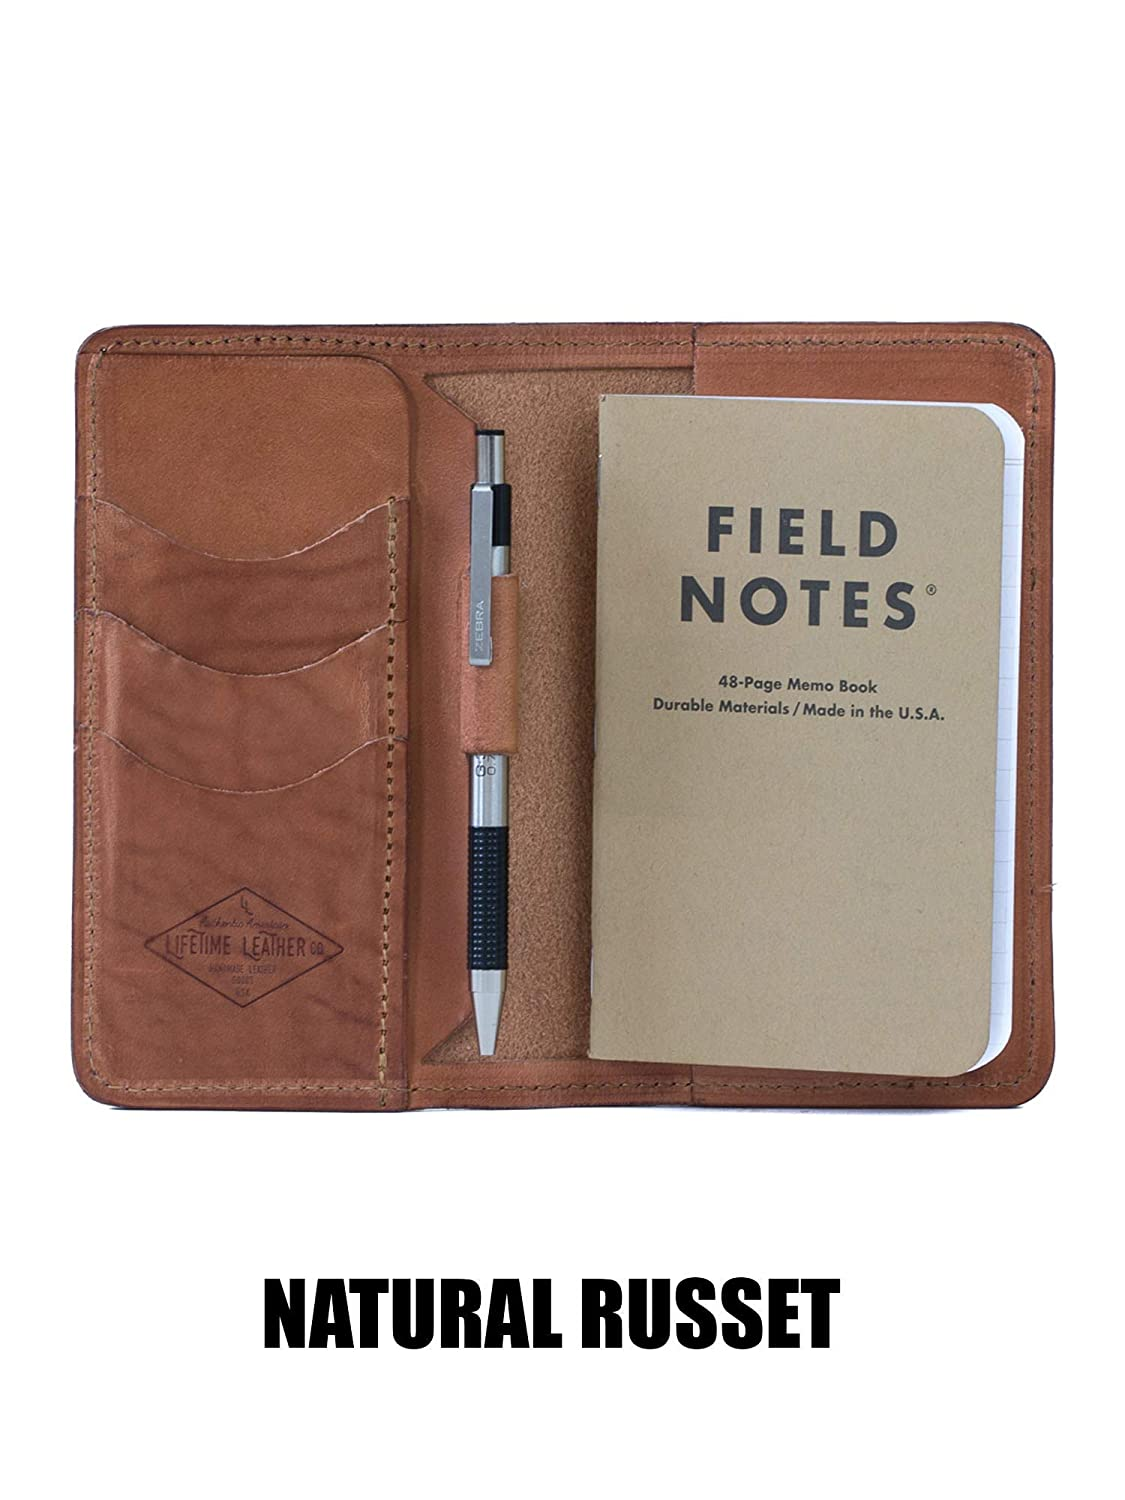 Handmade in Arizona Personalized Leather Field Notes Wallet Field Notes Cover Moleskine Cover Passport Wallet